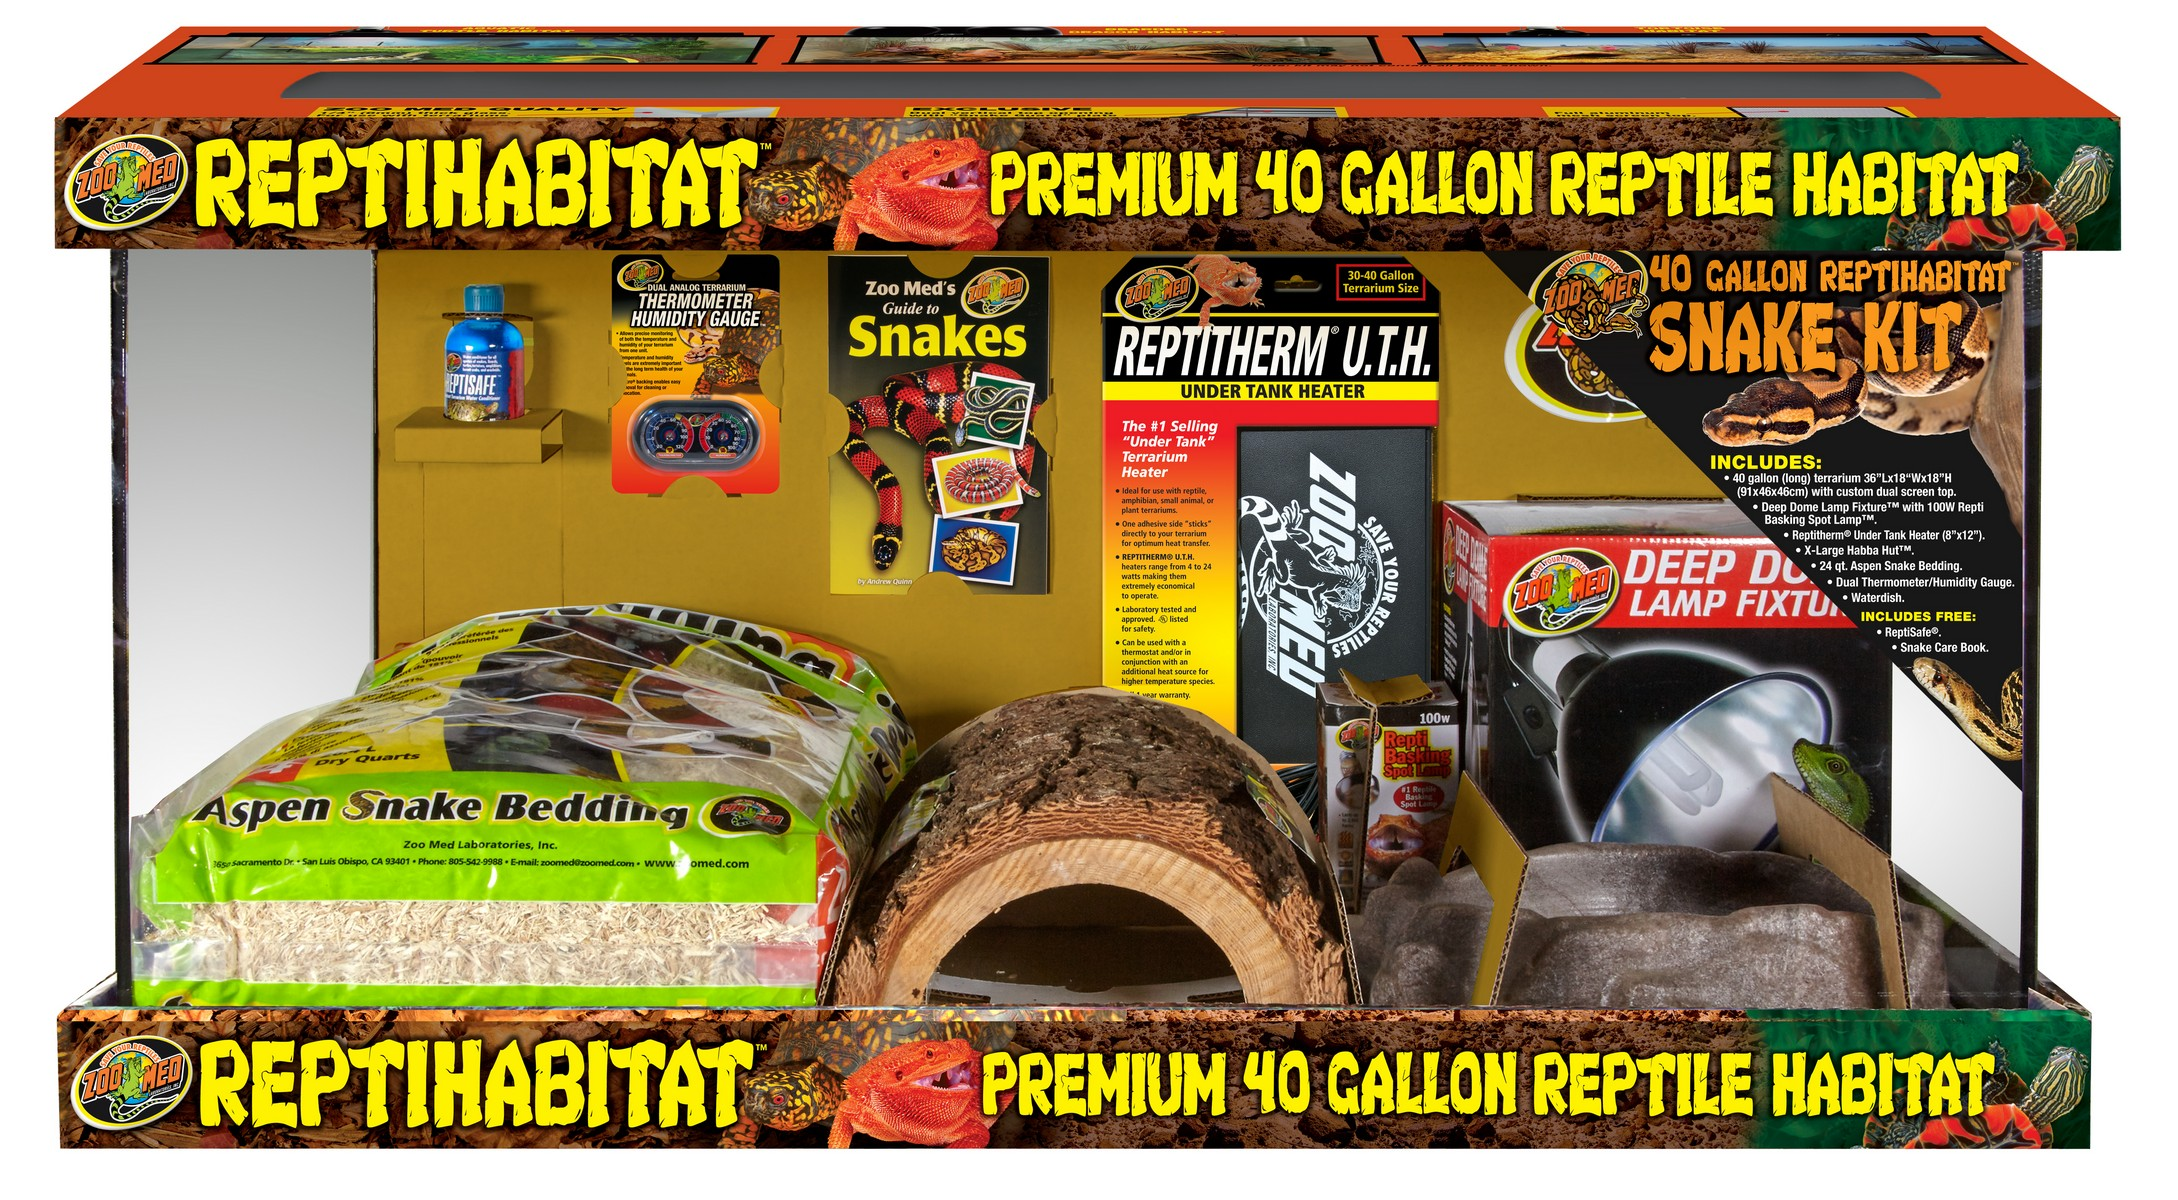 40 Gallon Reptihabitat Snake Kit Zoo Med Laboratories Inc